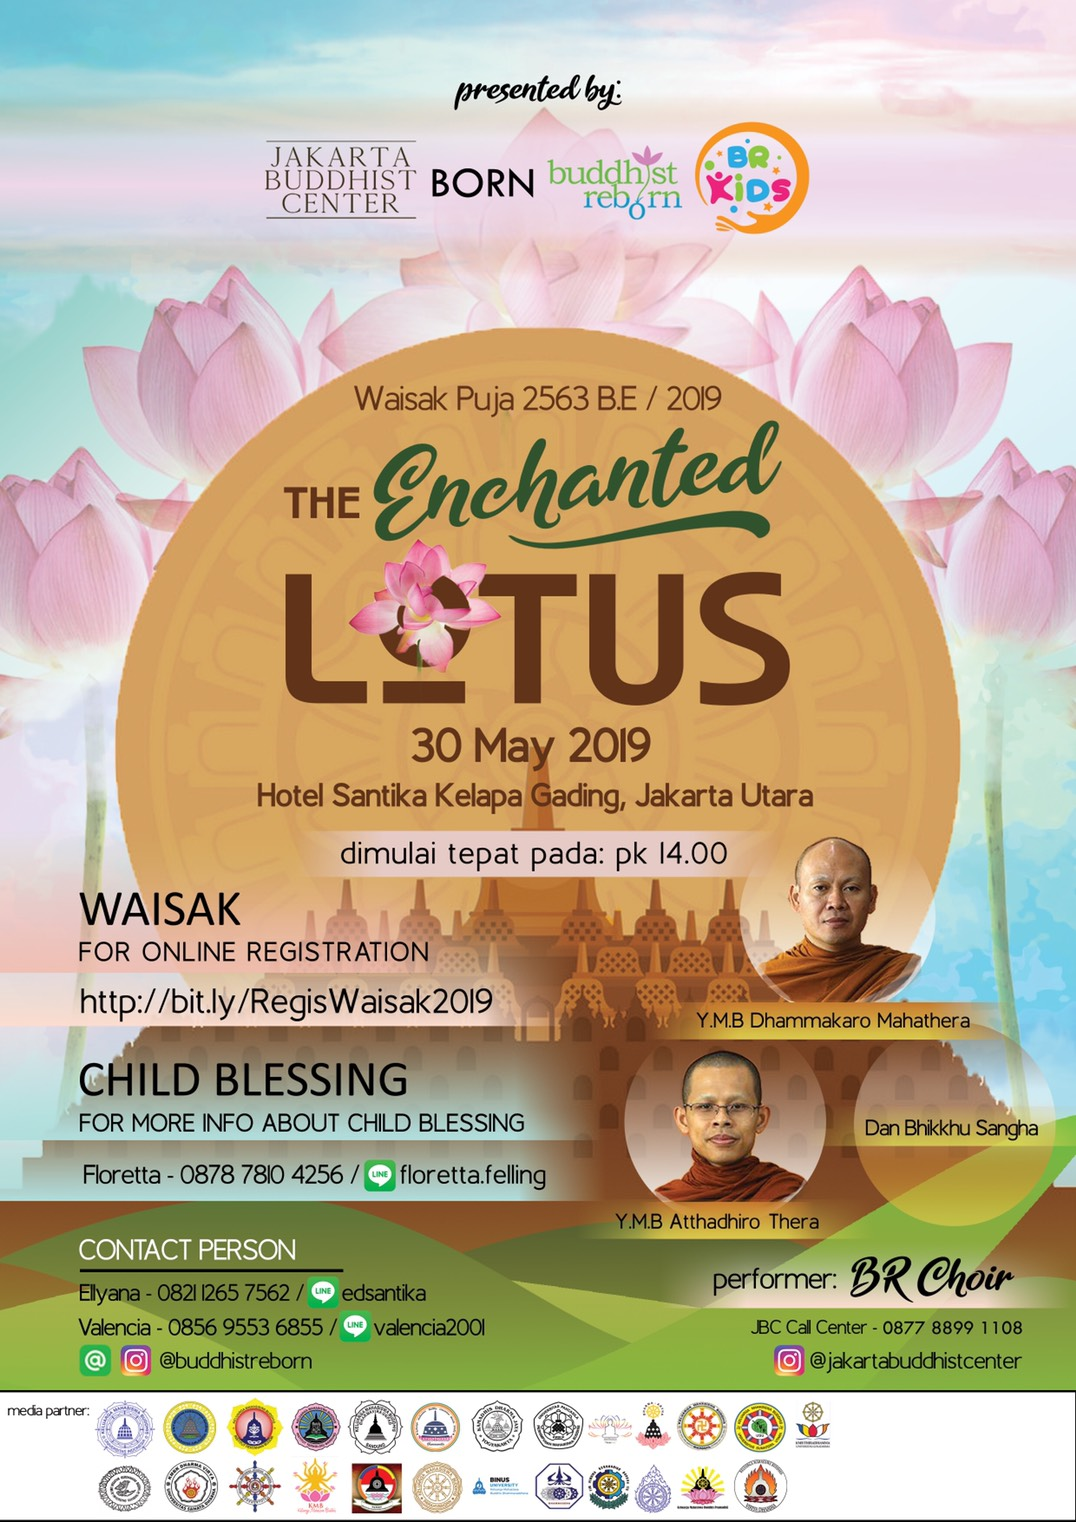 The Enchanted Lotus